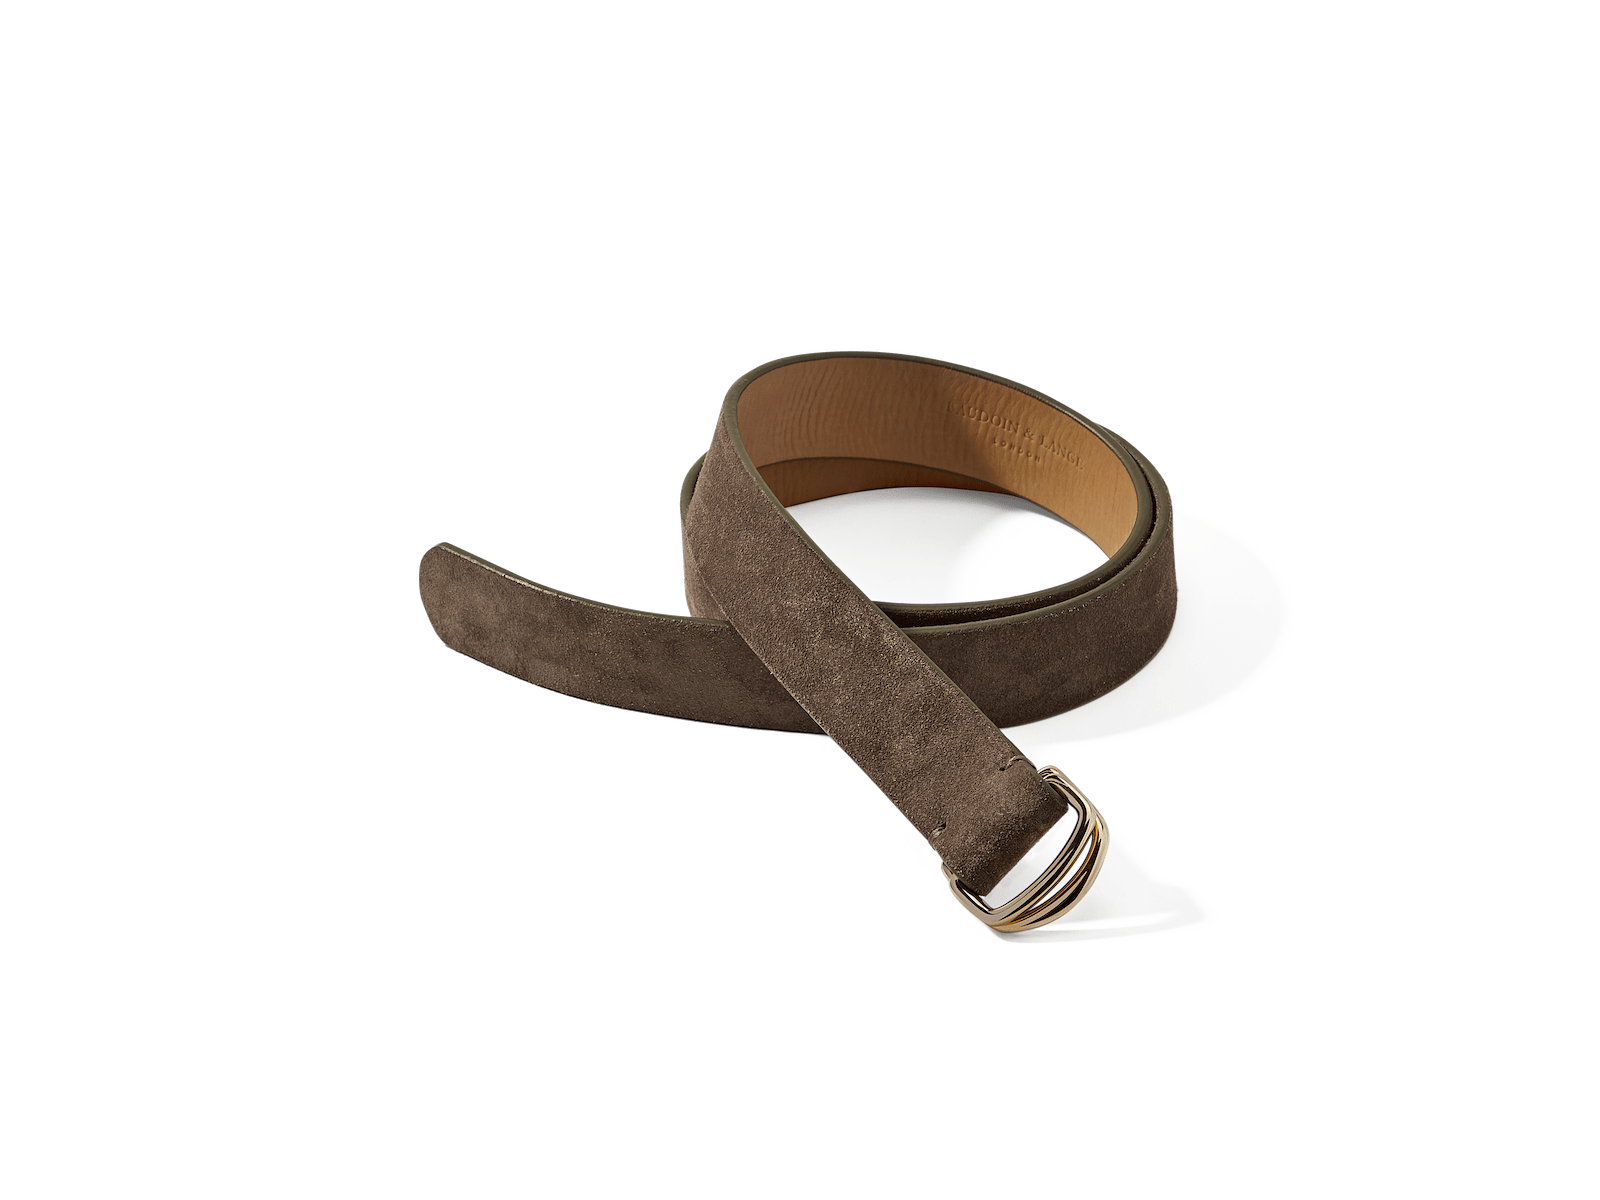 Sagan Belt Rings in Greige Glove Suede with Pale Gold Rings